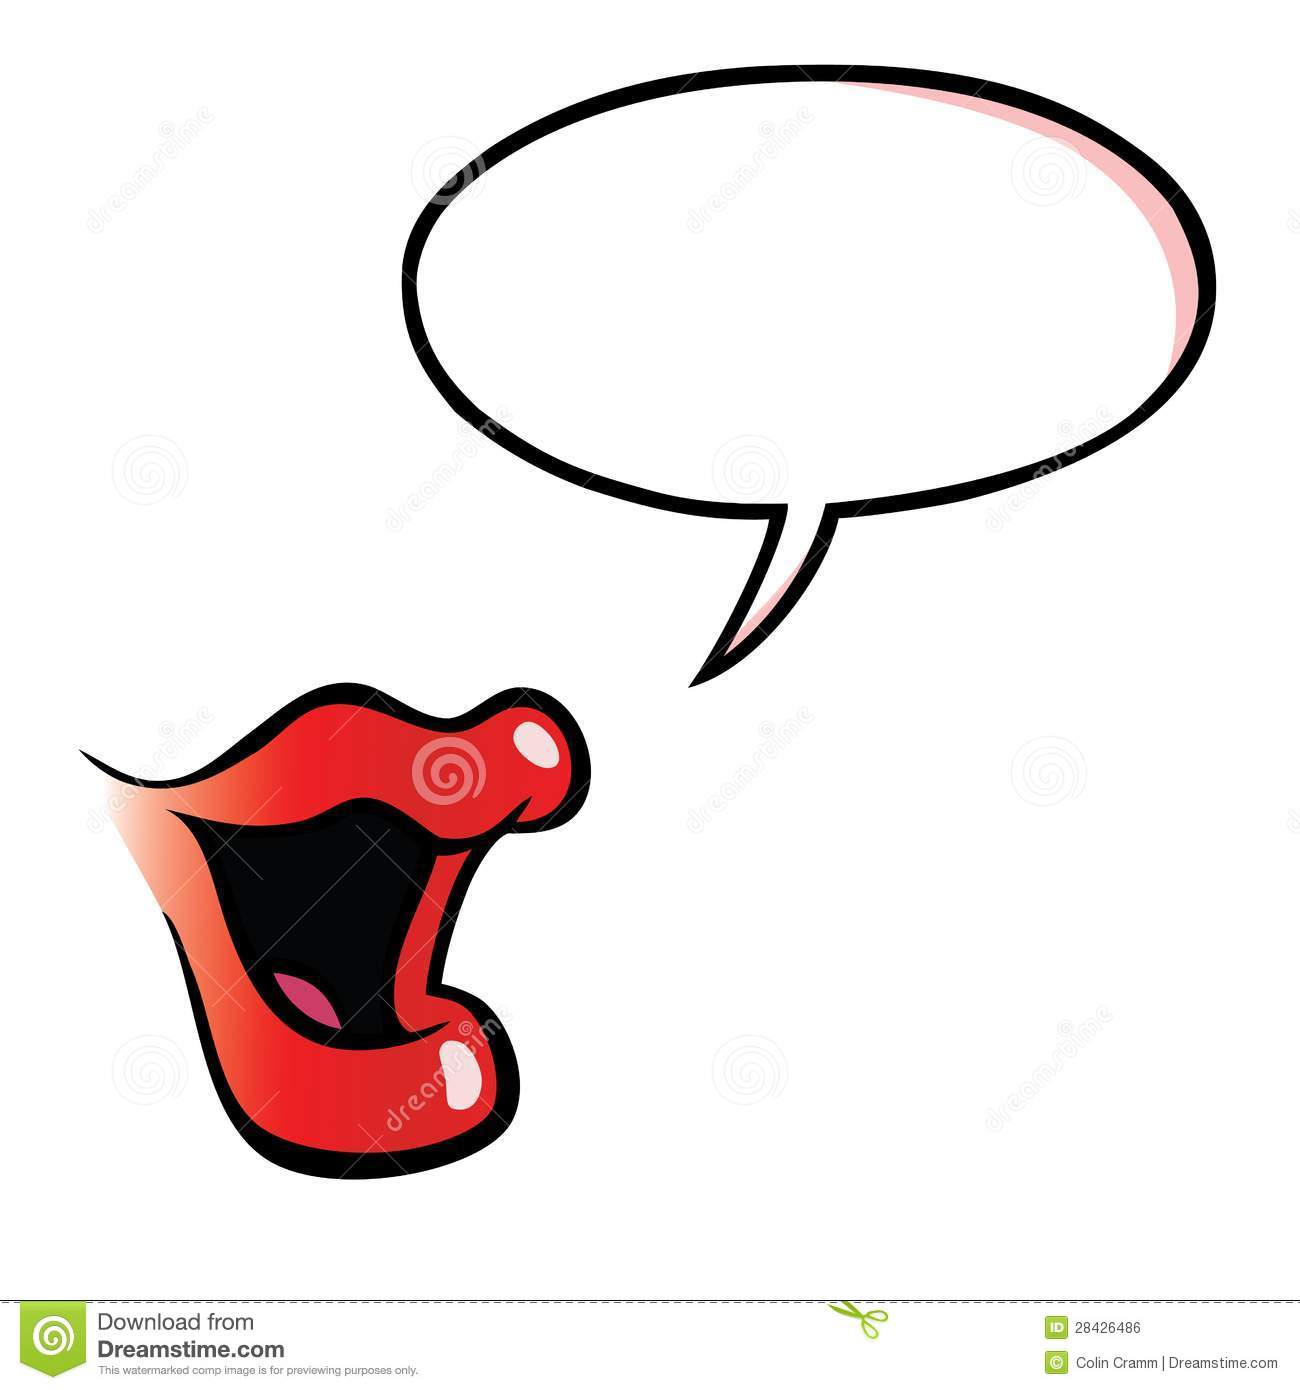 Village 259887520 furthermore 409101 Black Girl Magic Gold Outline in addition Stock Illustration Cartoon Grandmother Character Different Angles Image45868518 likewise Royalty Free Stock Image Cartoon Female Mouth Speech Bubble Image28426486 besides Lollipop Man. on old lady cartoon art